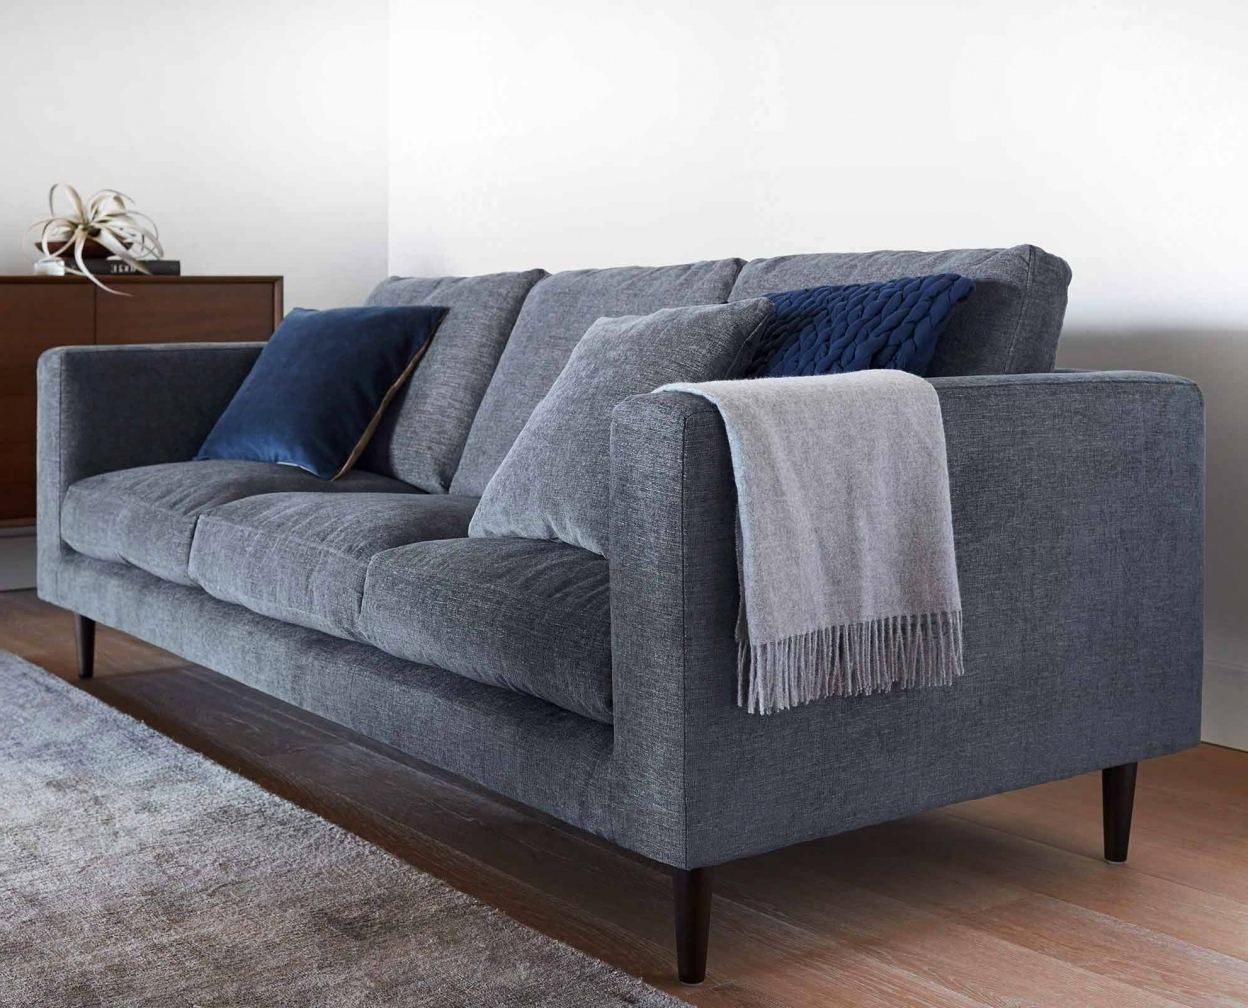 Dania Sectional Sofas For Latest Modern Sectional Sofas Cheap Capital Dania The Hagen Sofa Offers (Gallery 12 of 20)